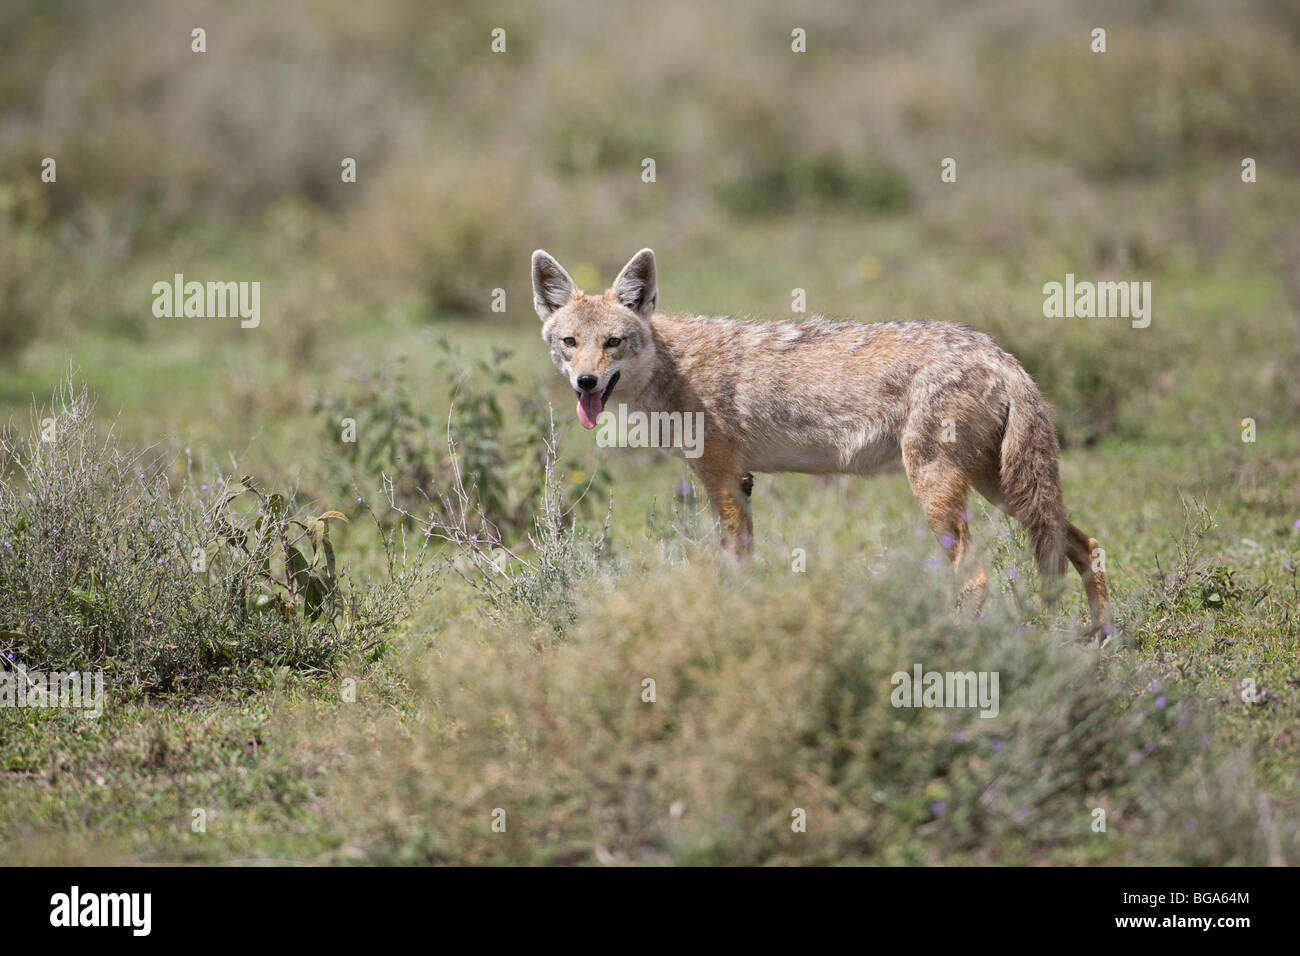 Common Jackal (Canis aureus) facing the camera and panting on the African plains - Stock Image